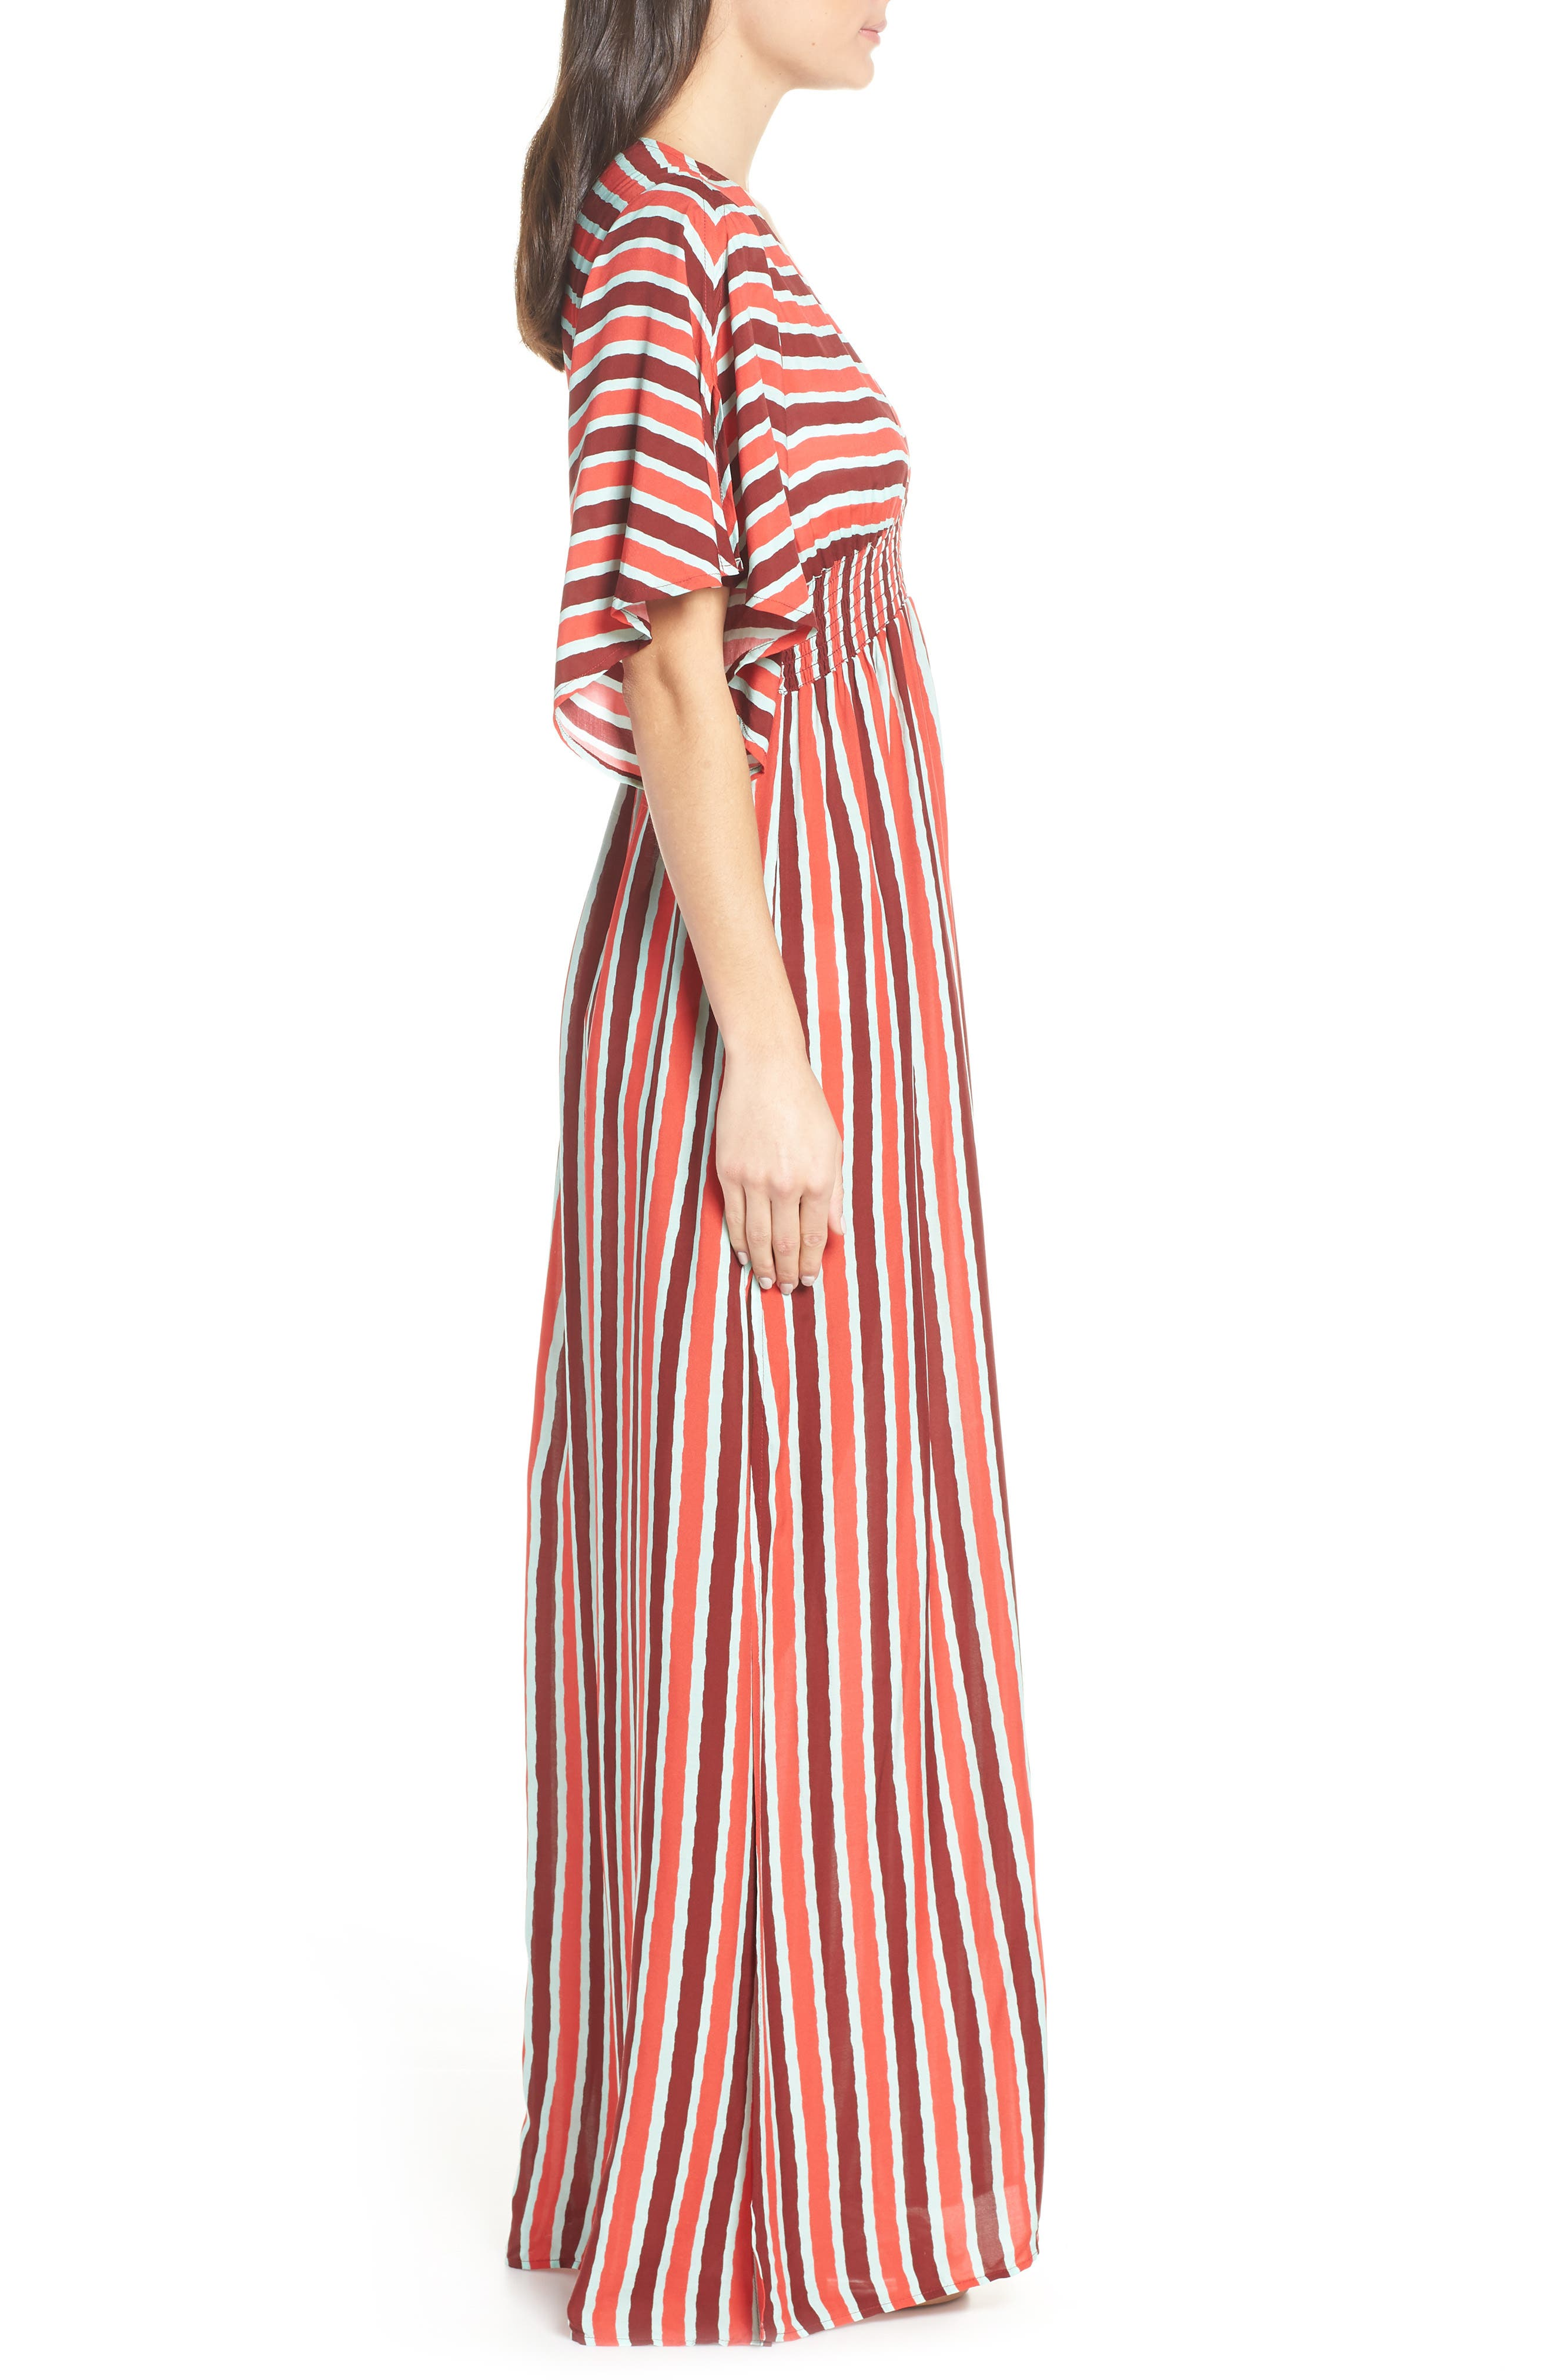 Morning Glam Cover-Up Maxi Dress,                             Alternate thumbnail 3, color,                             MULTI RED